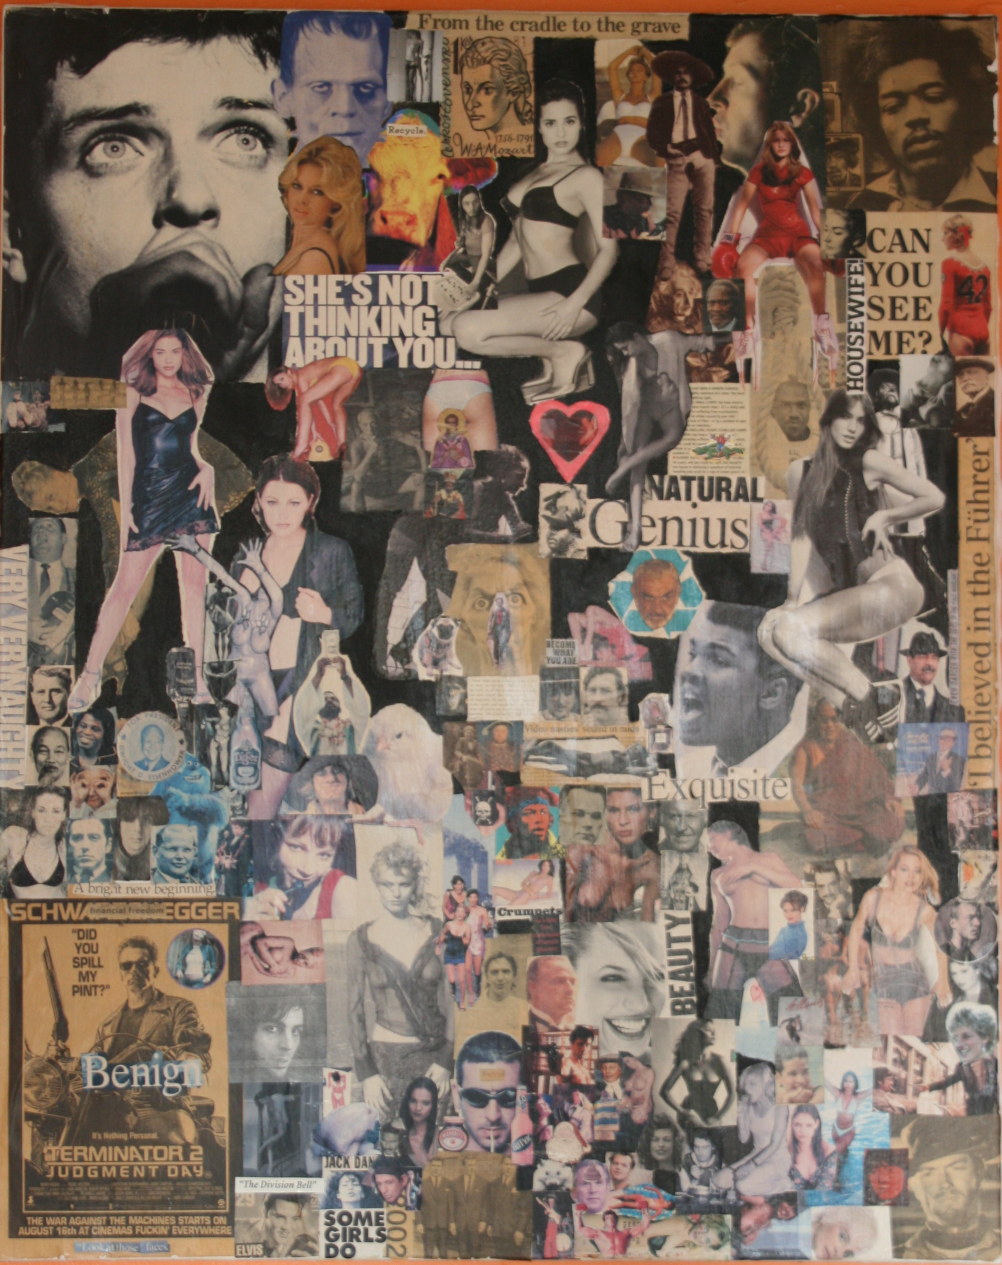 a collage of newspaper and magazine cuttings mounted on a stretched canvas with a black back ground. The work contains images of personalities such as Mohammad Ali, Frankenstein, eric cantona amongst others to create a cohesive and full pictorial essay